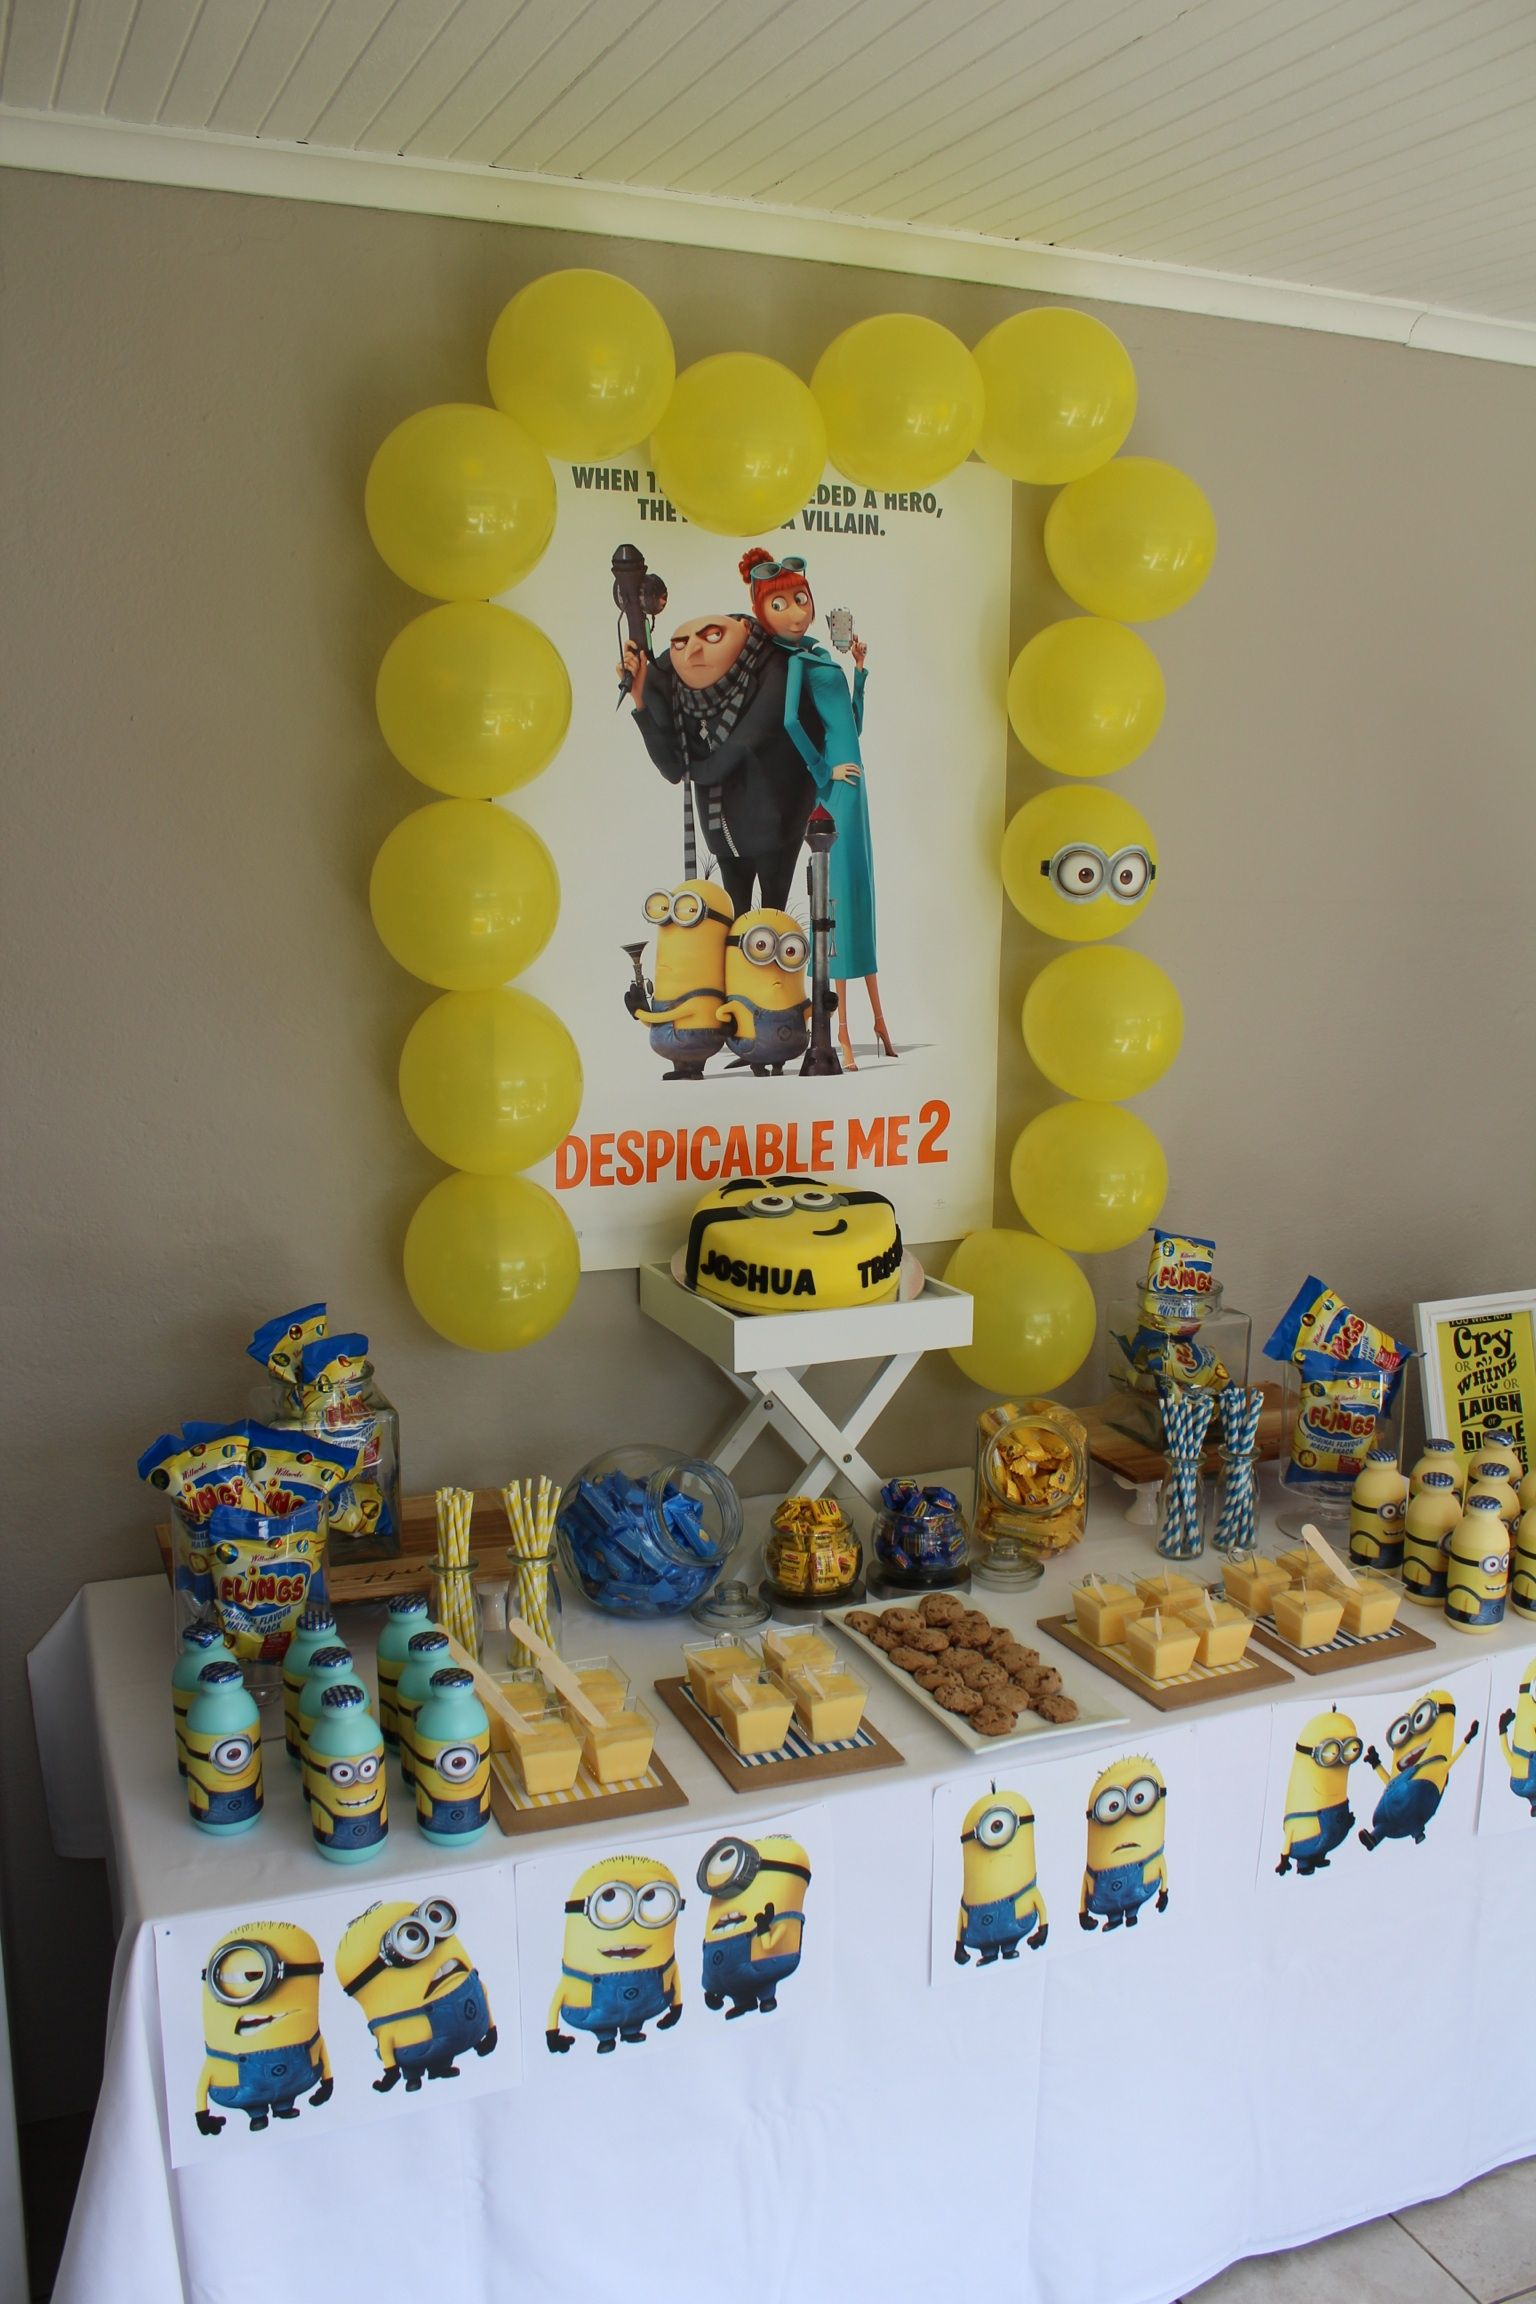 Pin By Jolita Kalausyte On My Parties Sugar Rush Parties Minion Birthday Party Minion Party Despicable Me Party